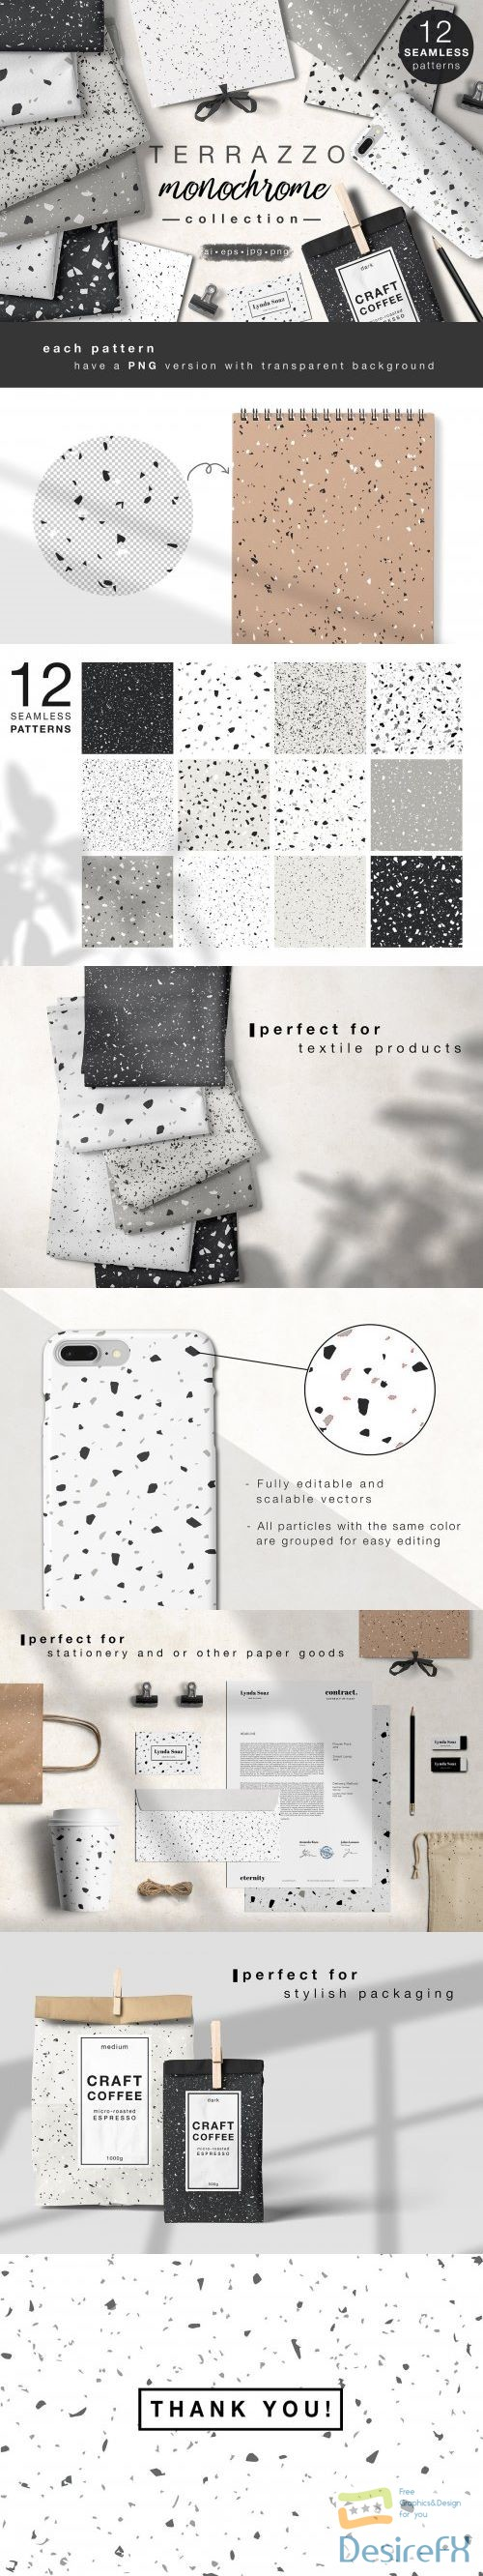 stock-vectors - TERRAZZO monochrome collection - 3950969